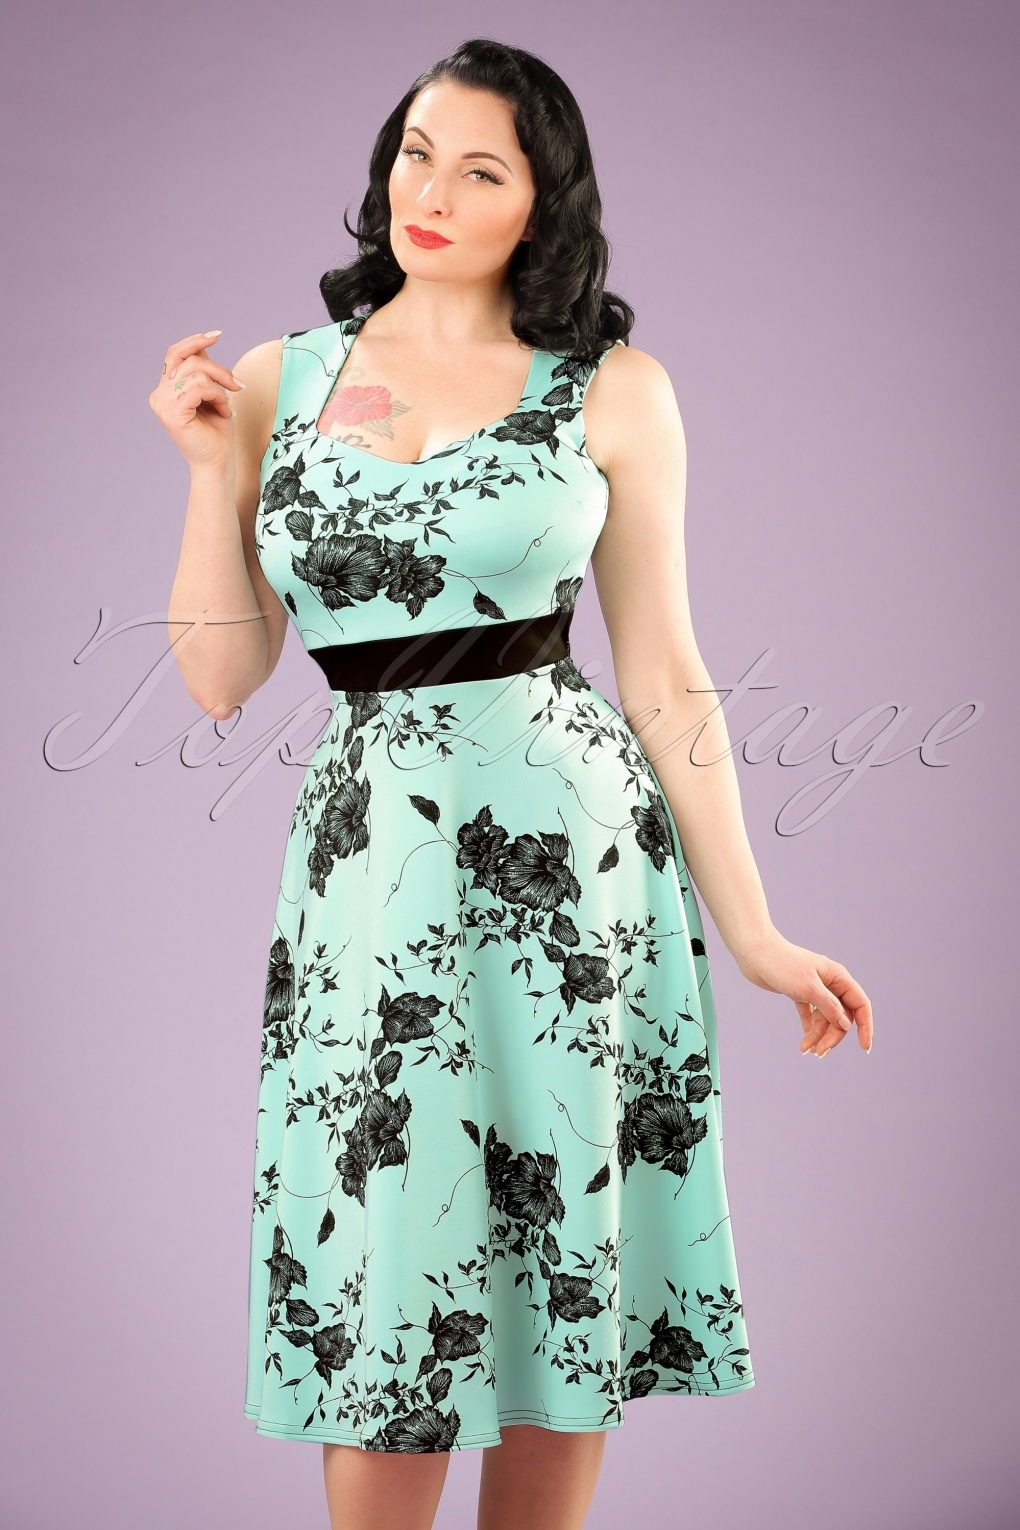 Vintage Inspired Cocktail Dresses, Party Dresses TopVintage Exclusive  50s Veronique Floral Swing Dress in Mint £43.86 AT vintagedancer.com